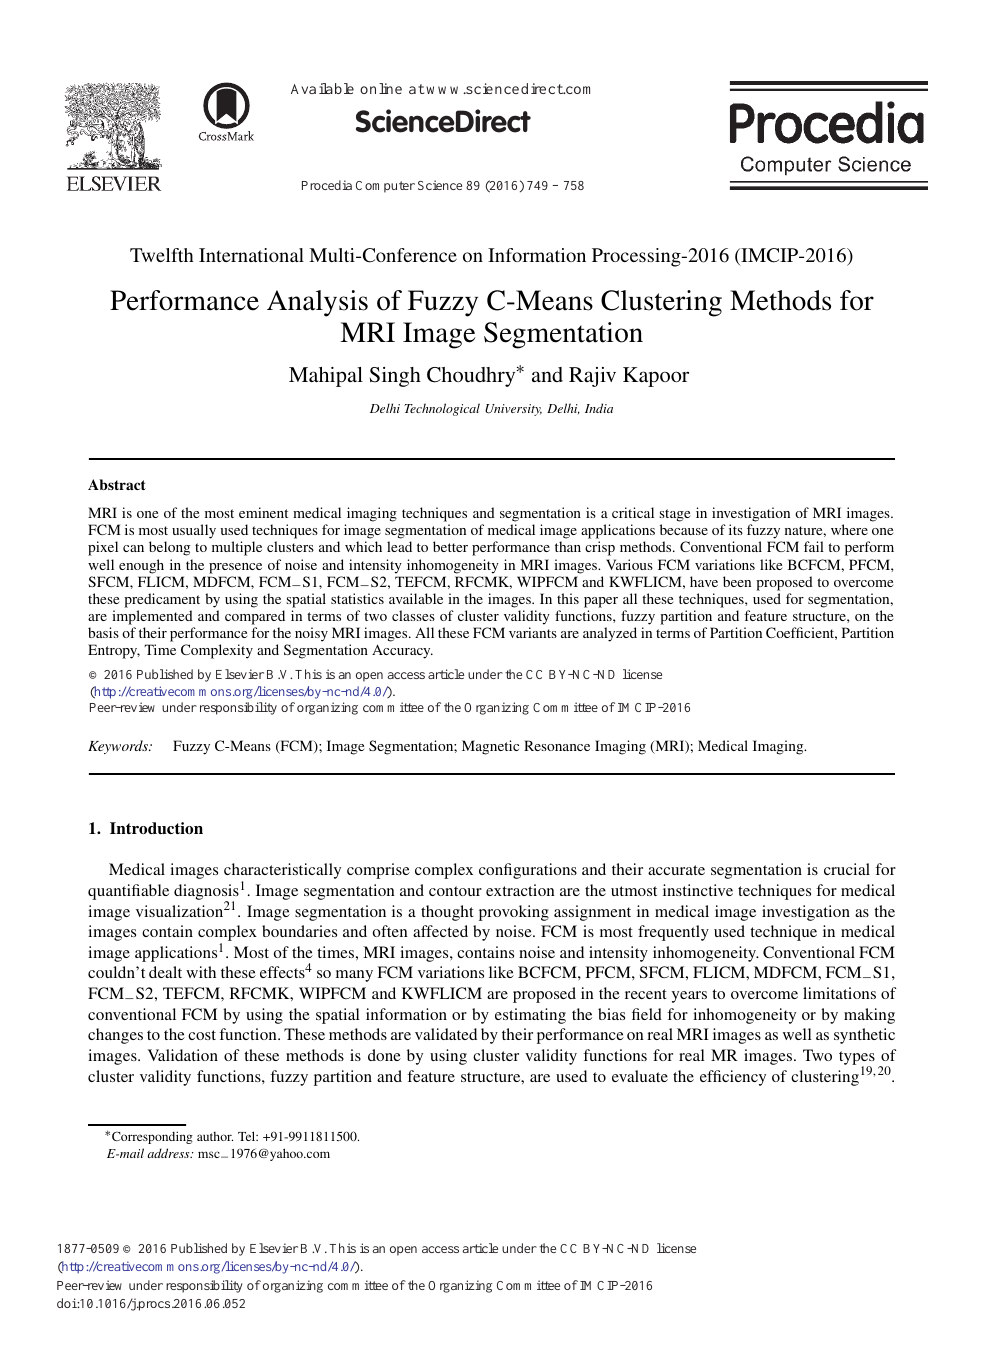 Performance Analysis of Fuzzy C-Means Clustering Methods for